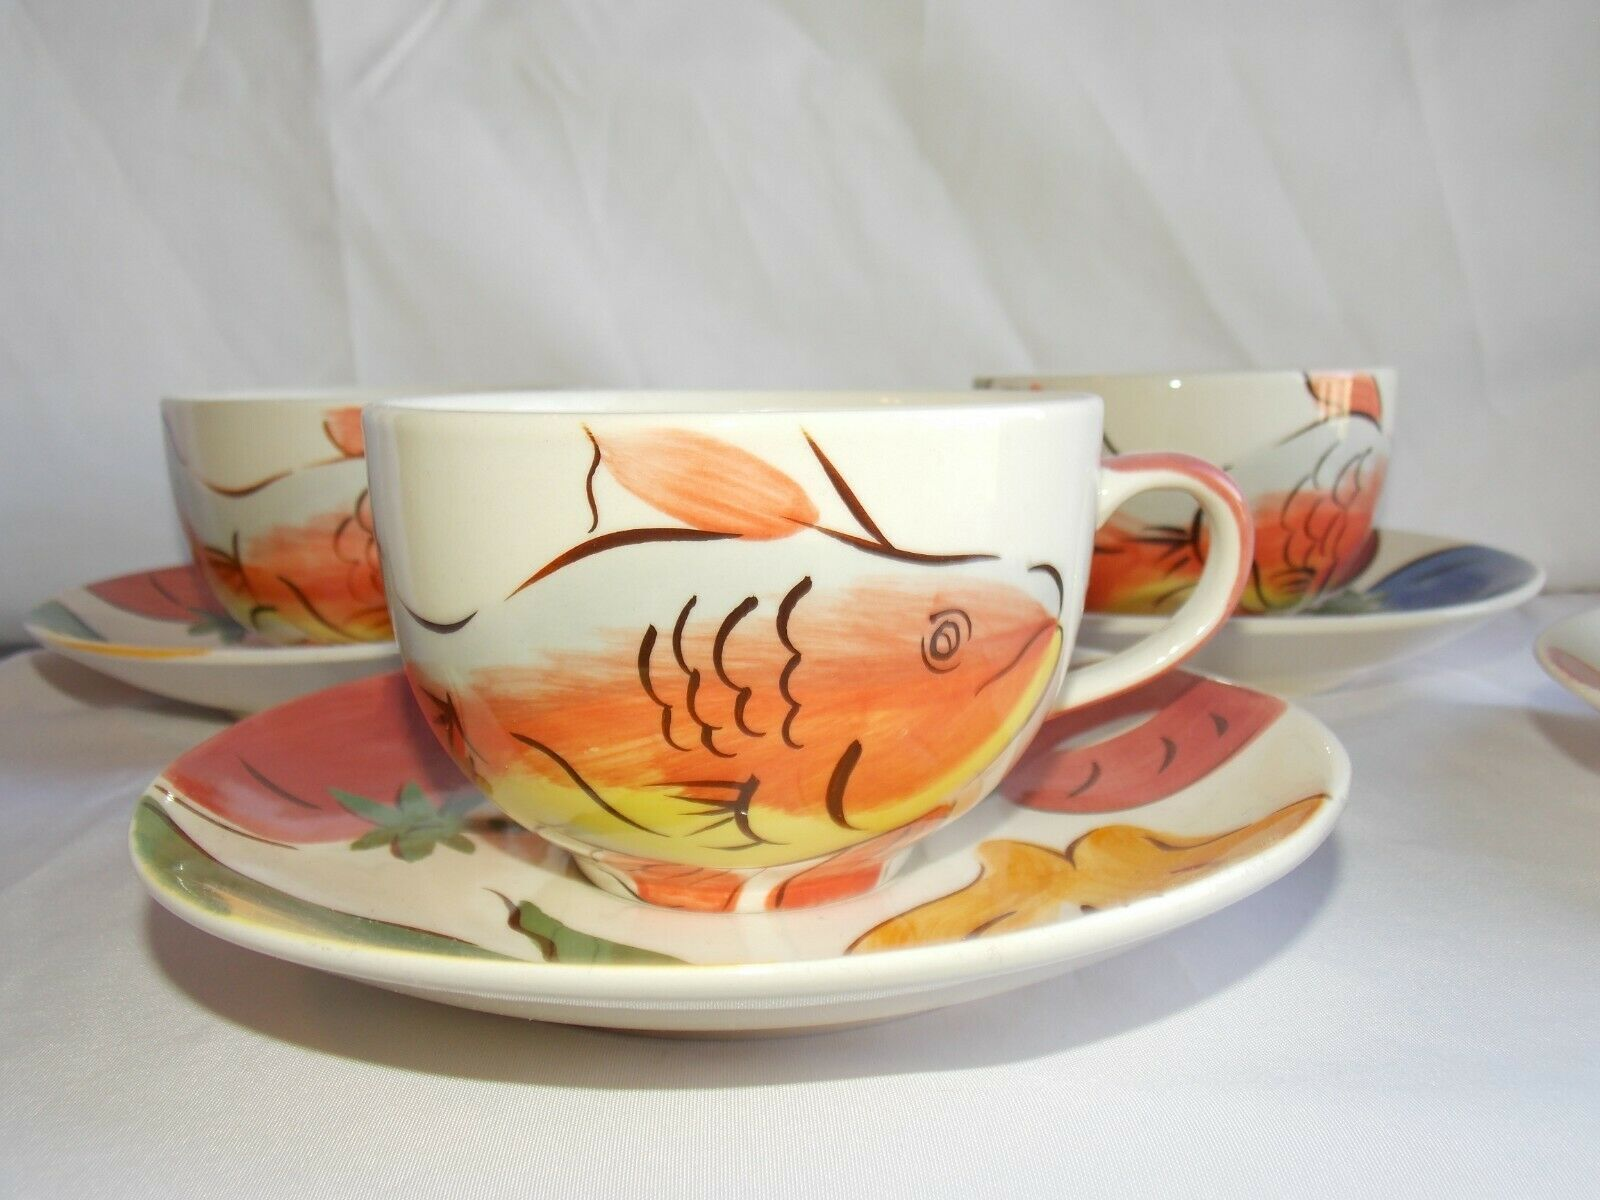 4 Herman Dodge & Son Cup and Saucer Sets Fish, Vegetables Hand-painted Ceramic